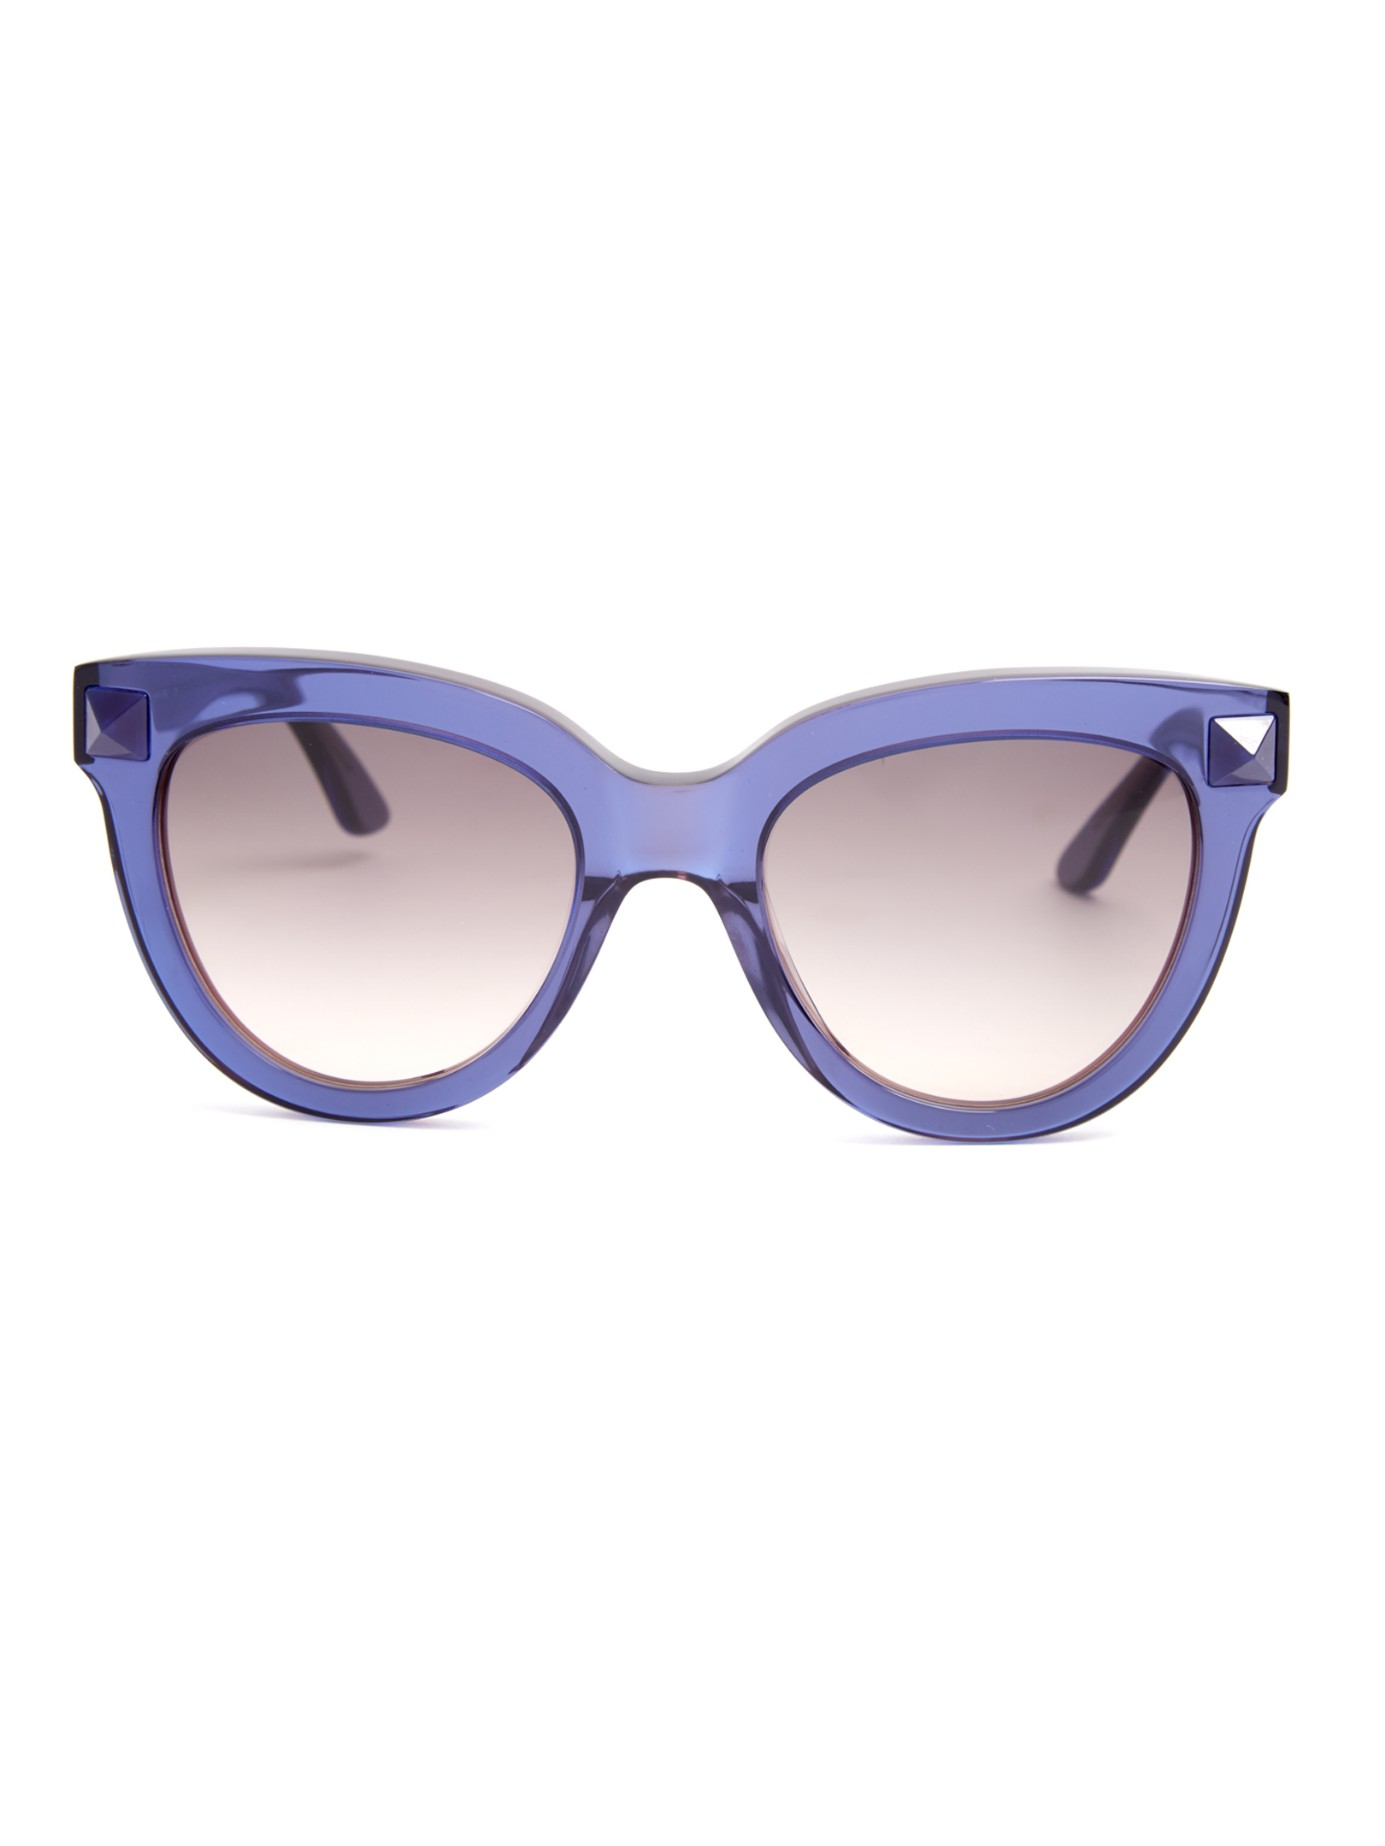 Lyst - Valentino Rockstud Cat-eye Frame Sunglasses in Blue